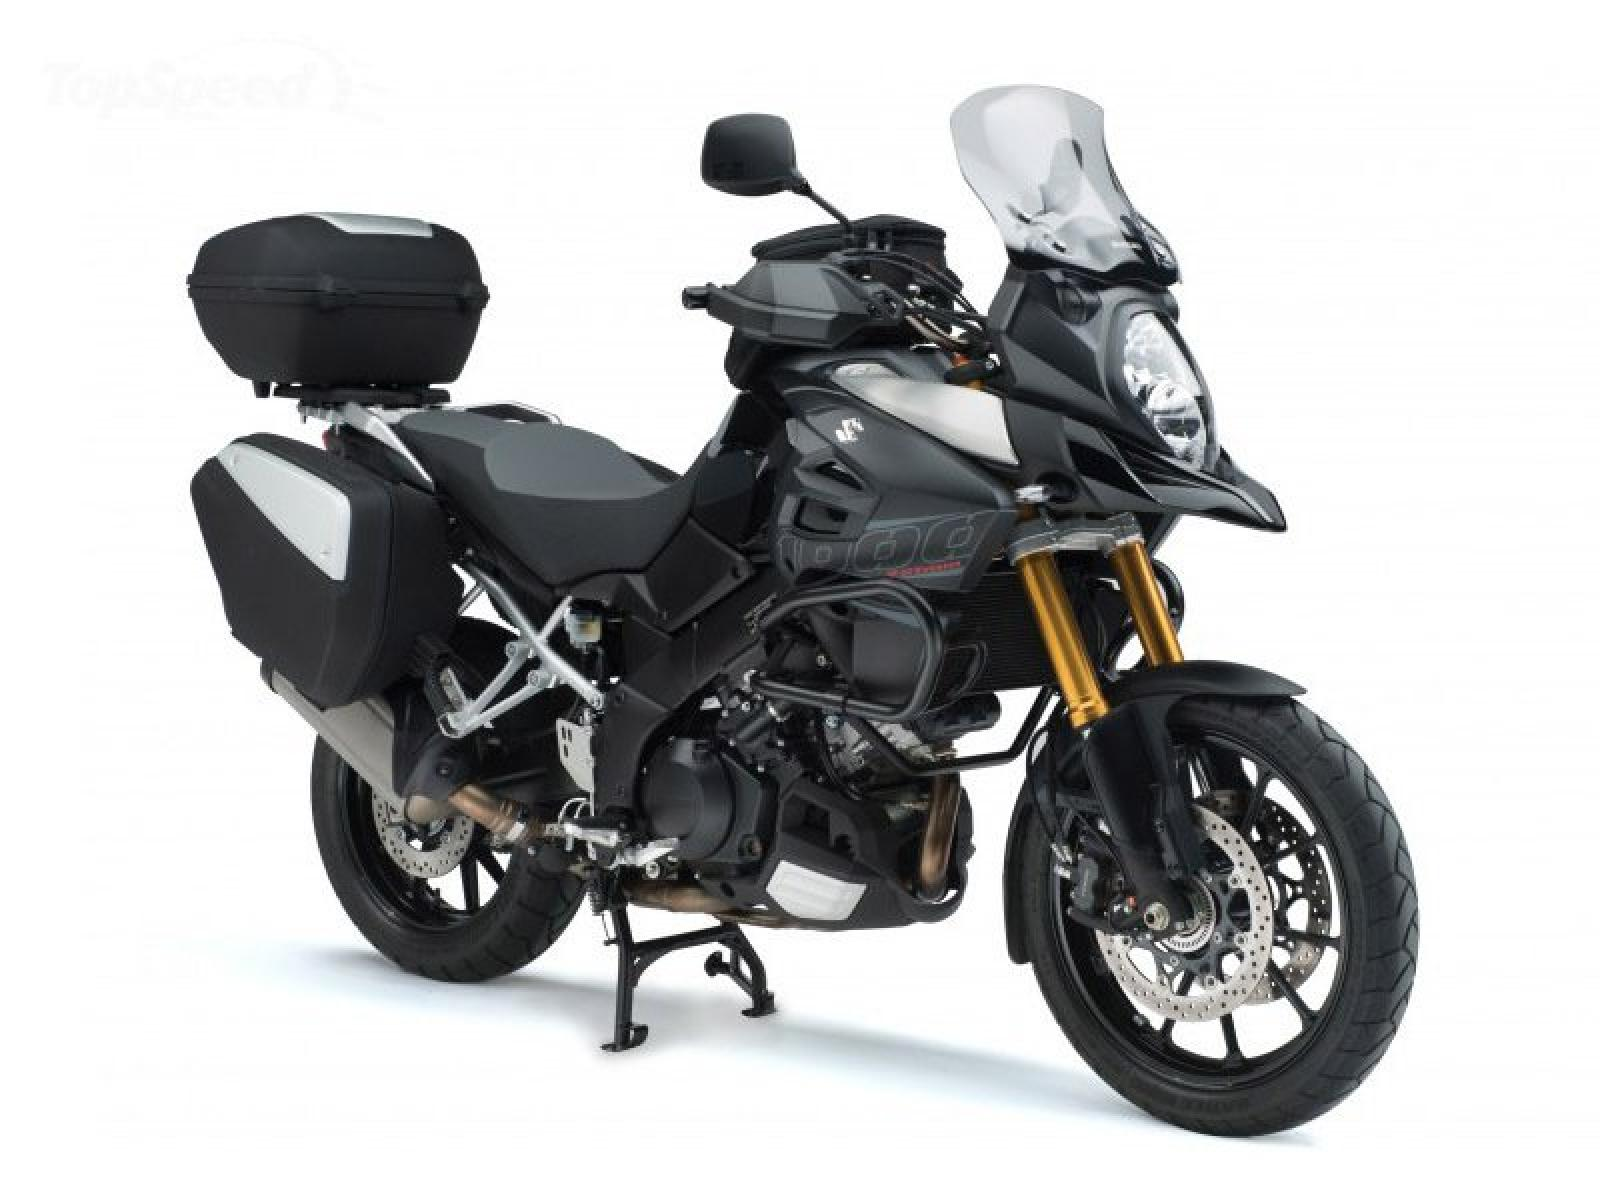 suzuki suzuki v strom grand touring moto zombdrive com. Black Bedroom Furniture Sets. Home Design Ideas